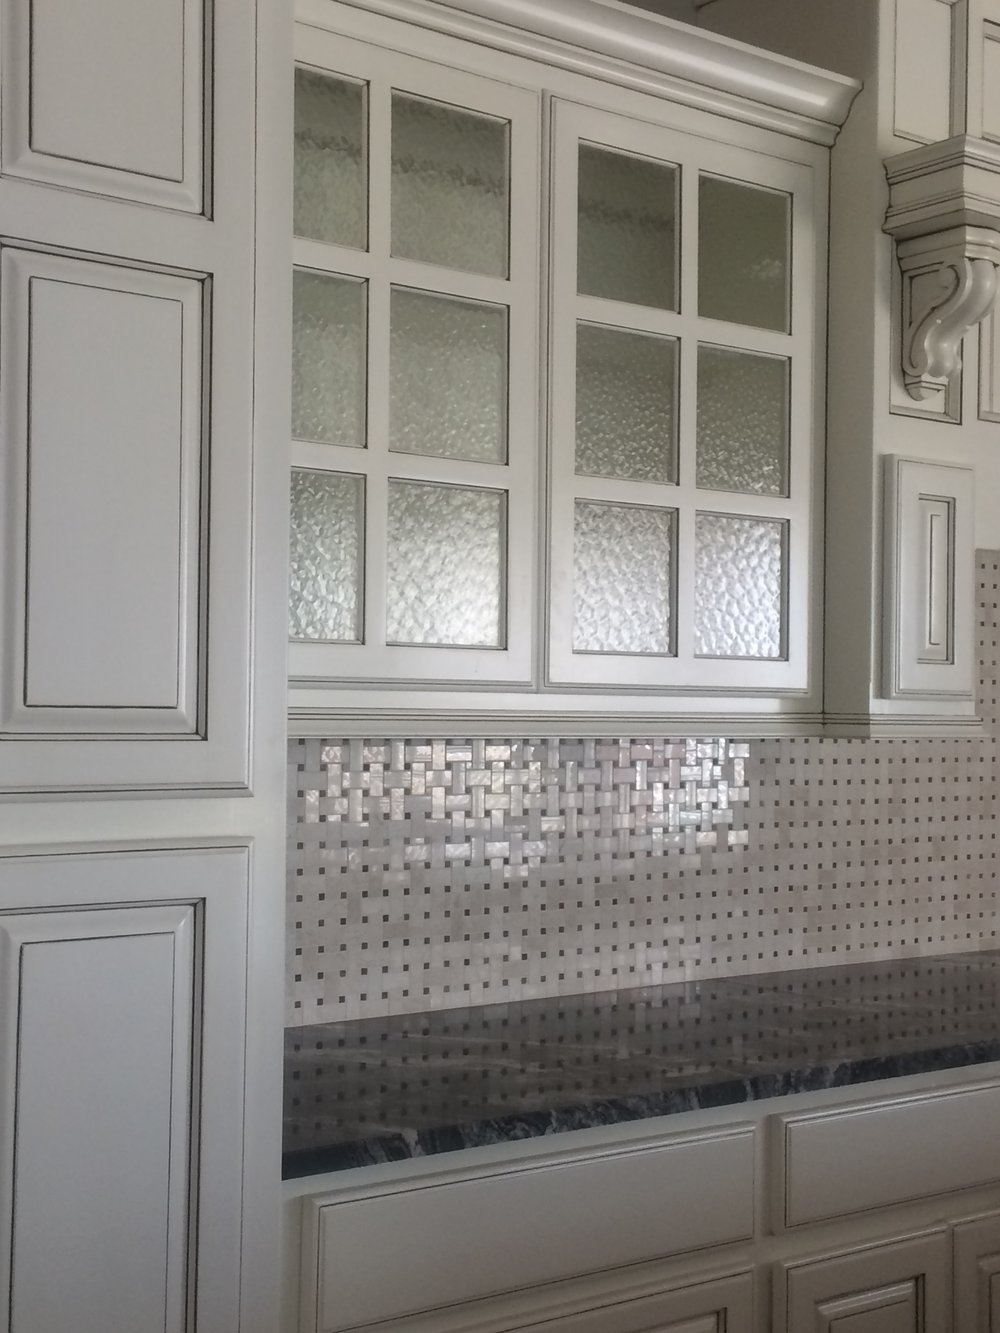 Personal touch in the kitchen? - • Glass backslash• Glass for Cabinet doors• Floating glass shelves• Glass cabinet shelves• Custom glass ideas